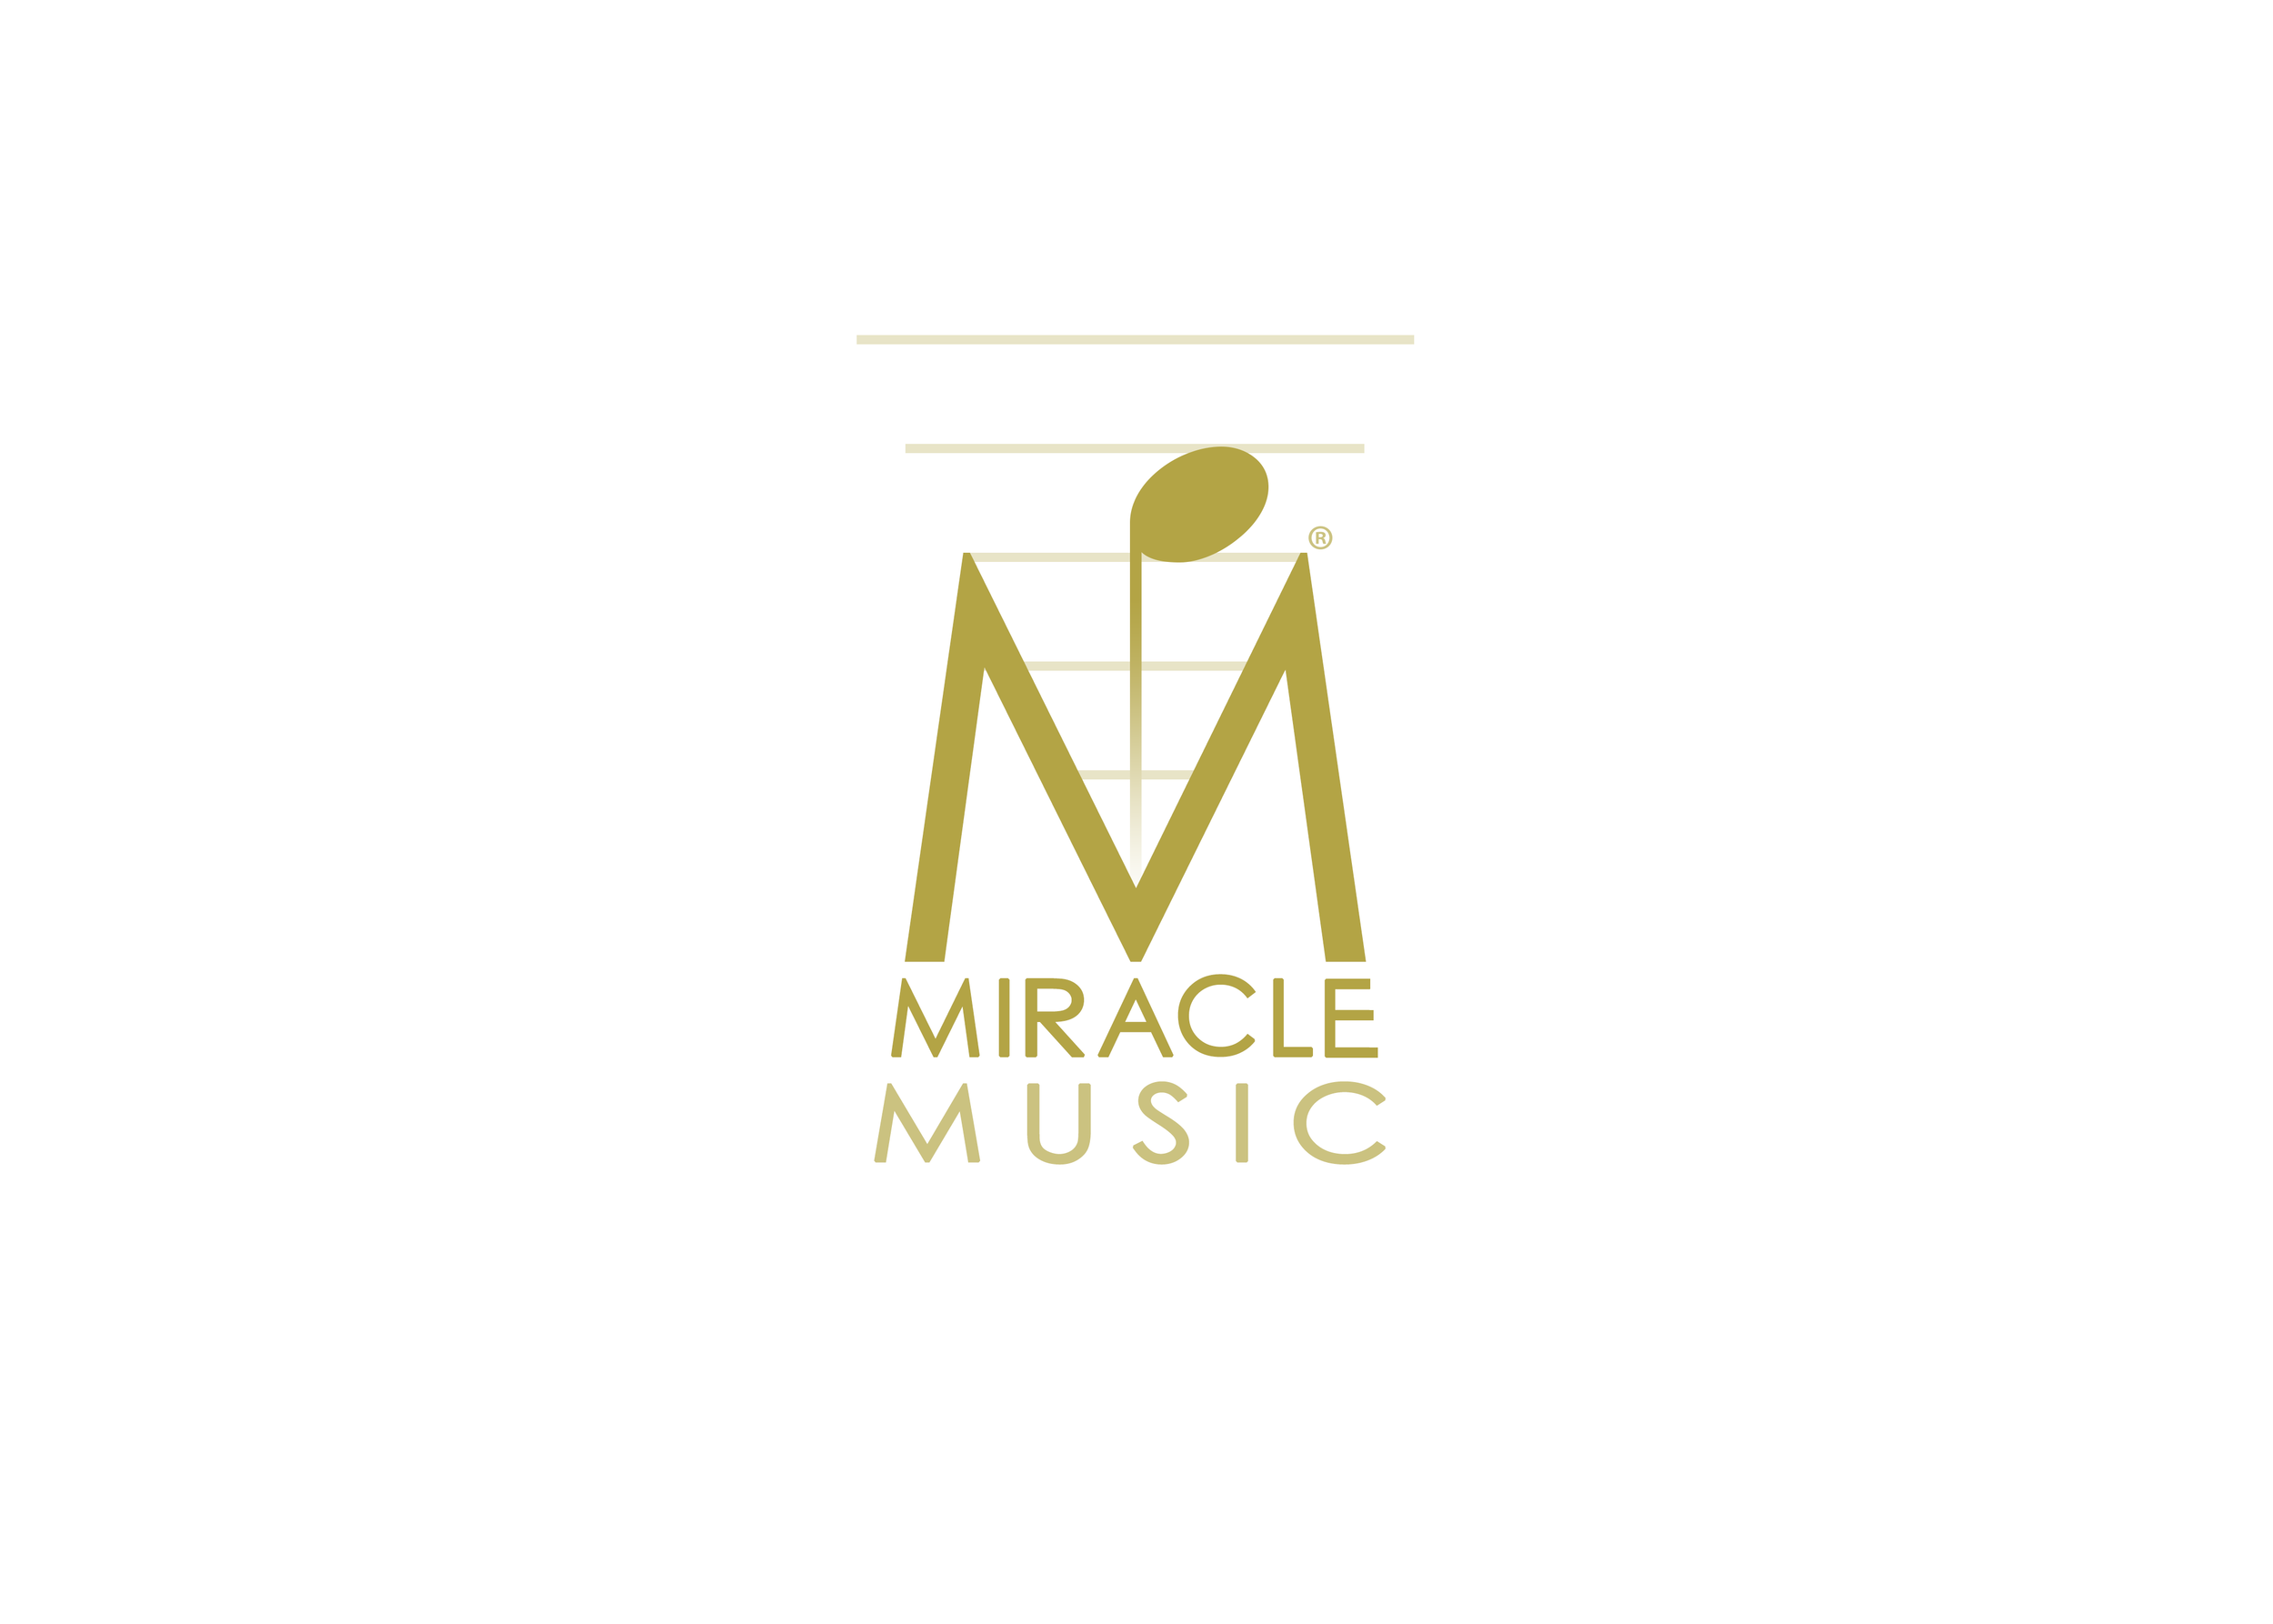 Miracle_Music_Final.png